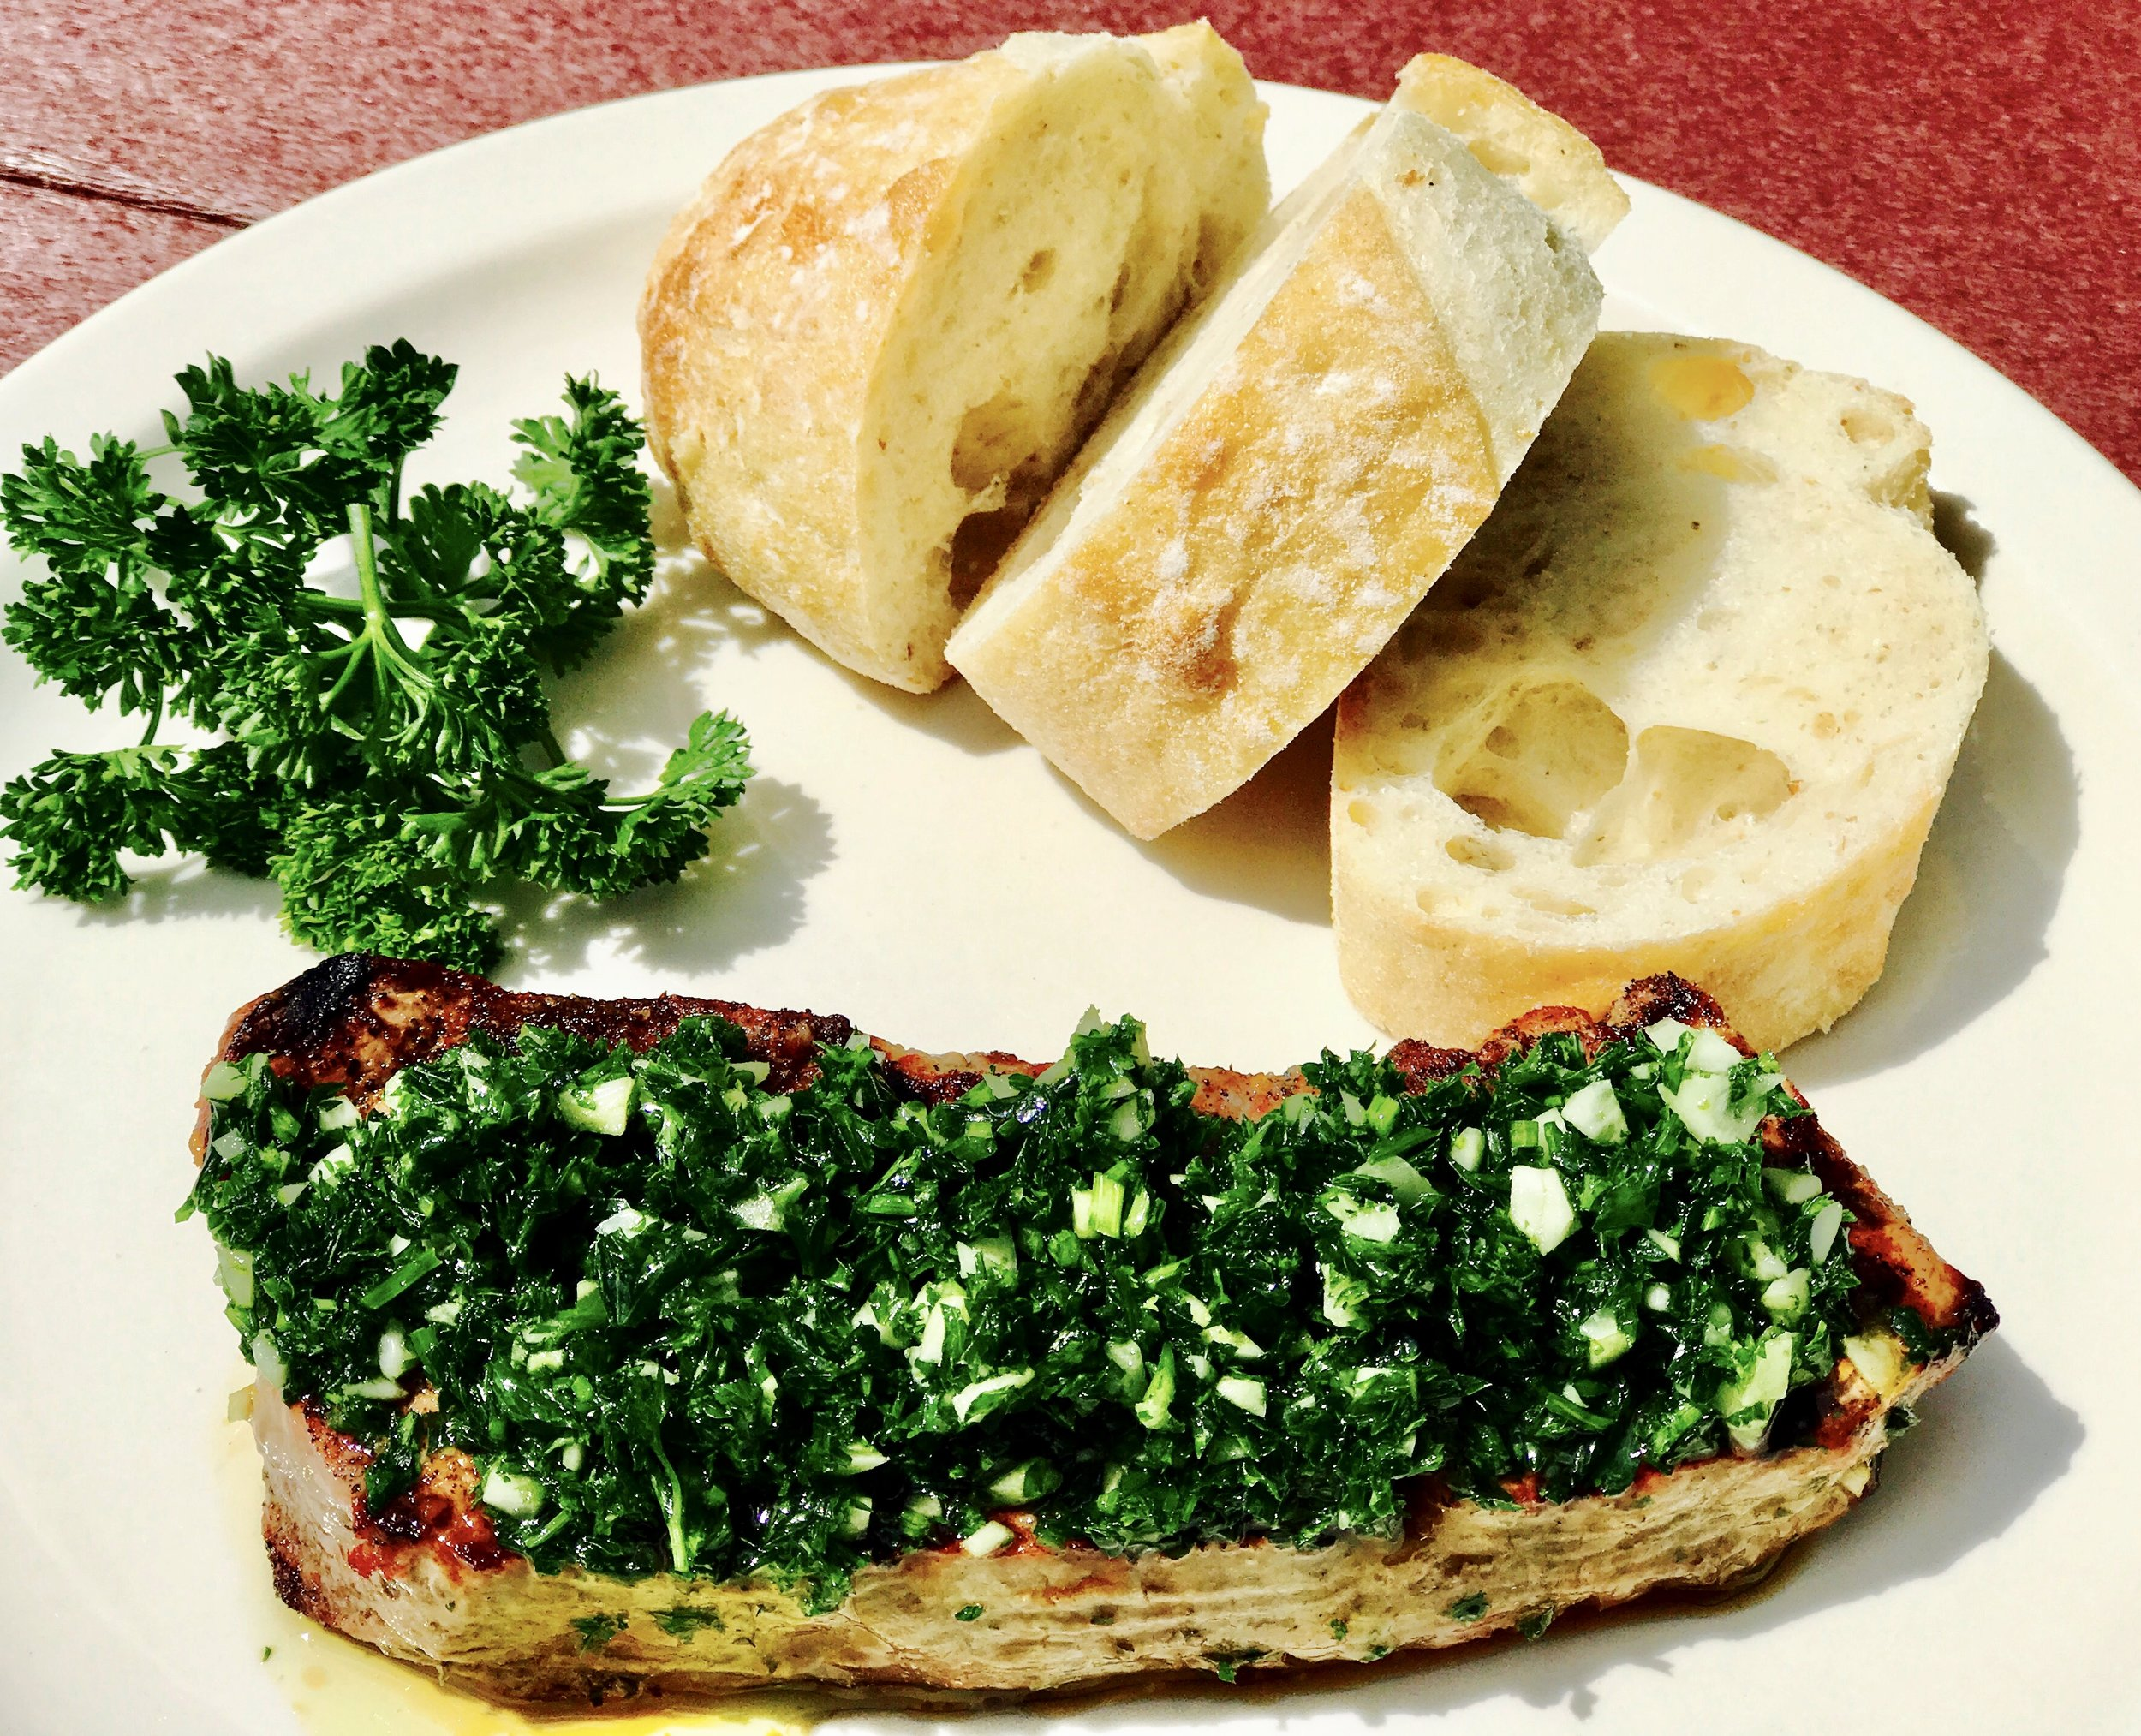 - Chimichurri is a Central American marinade